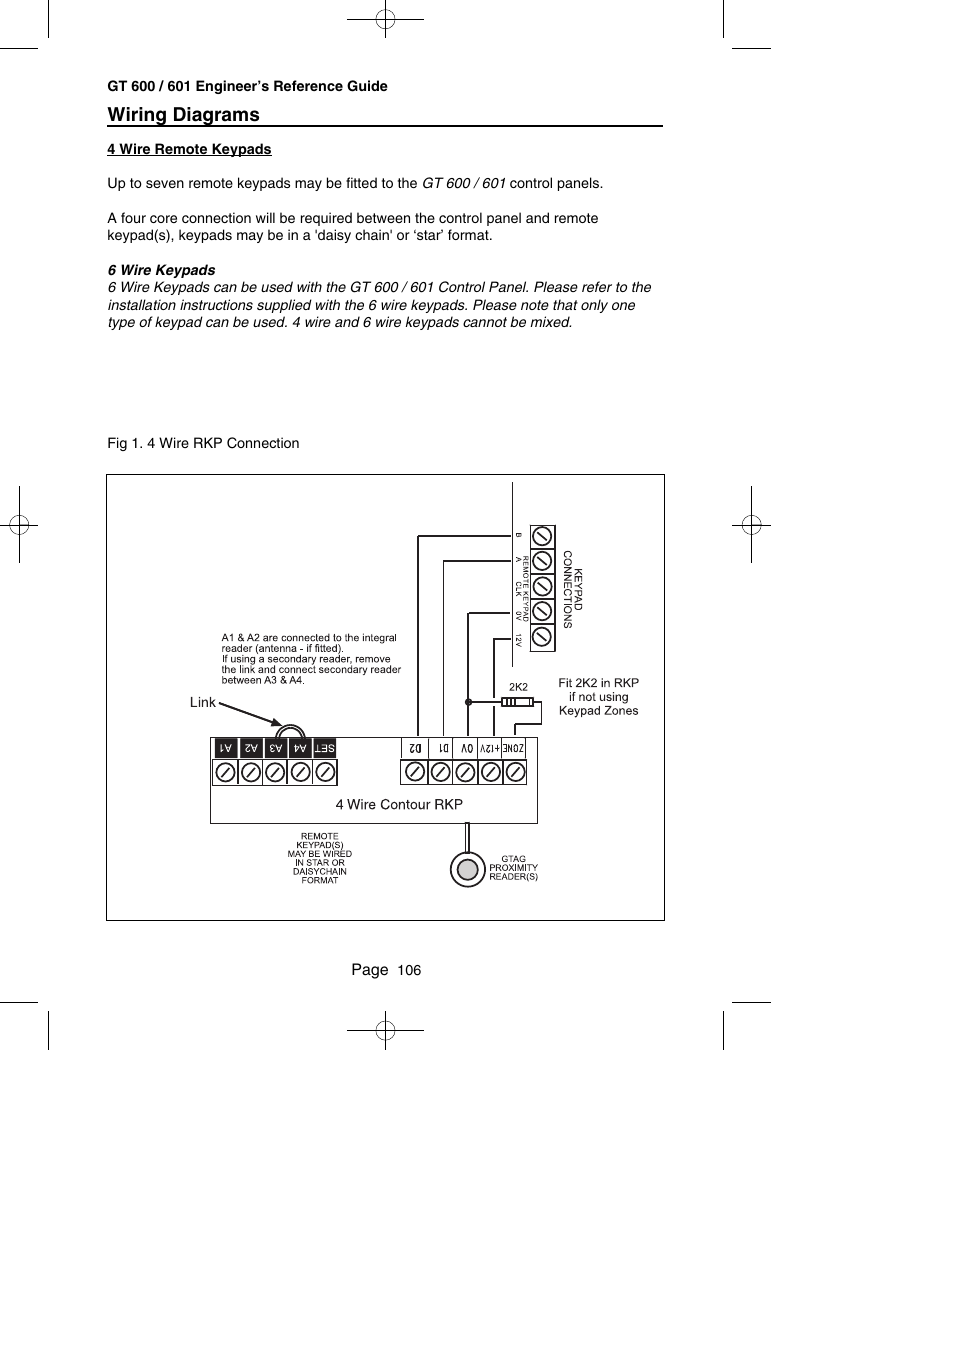 Wiring Diagrams Risco Group Gardtec Gt600 User Manual Page 108 128 6 Wire Diagram